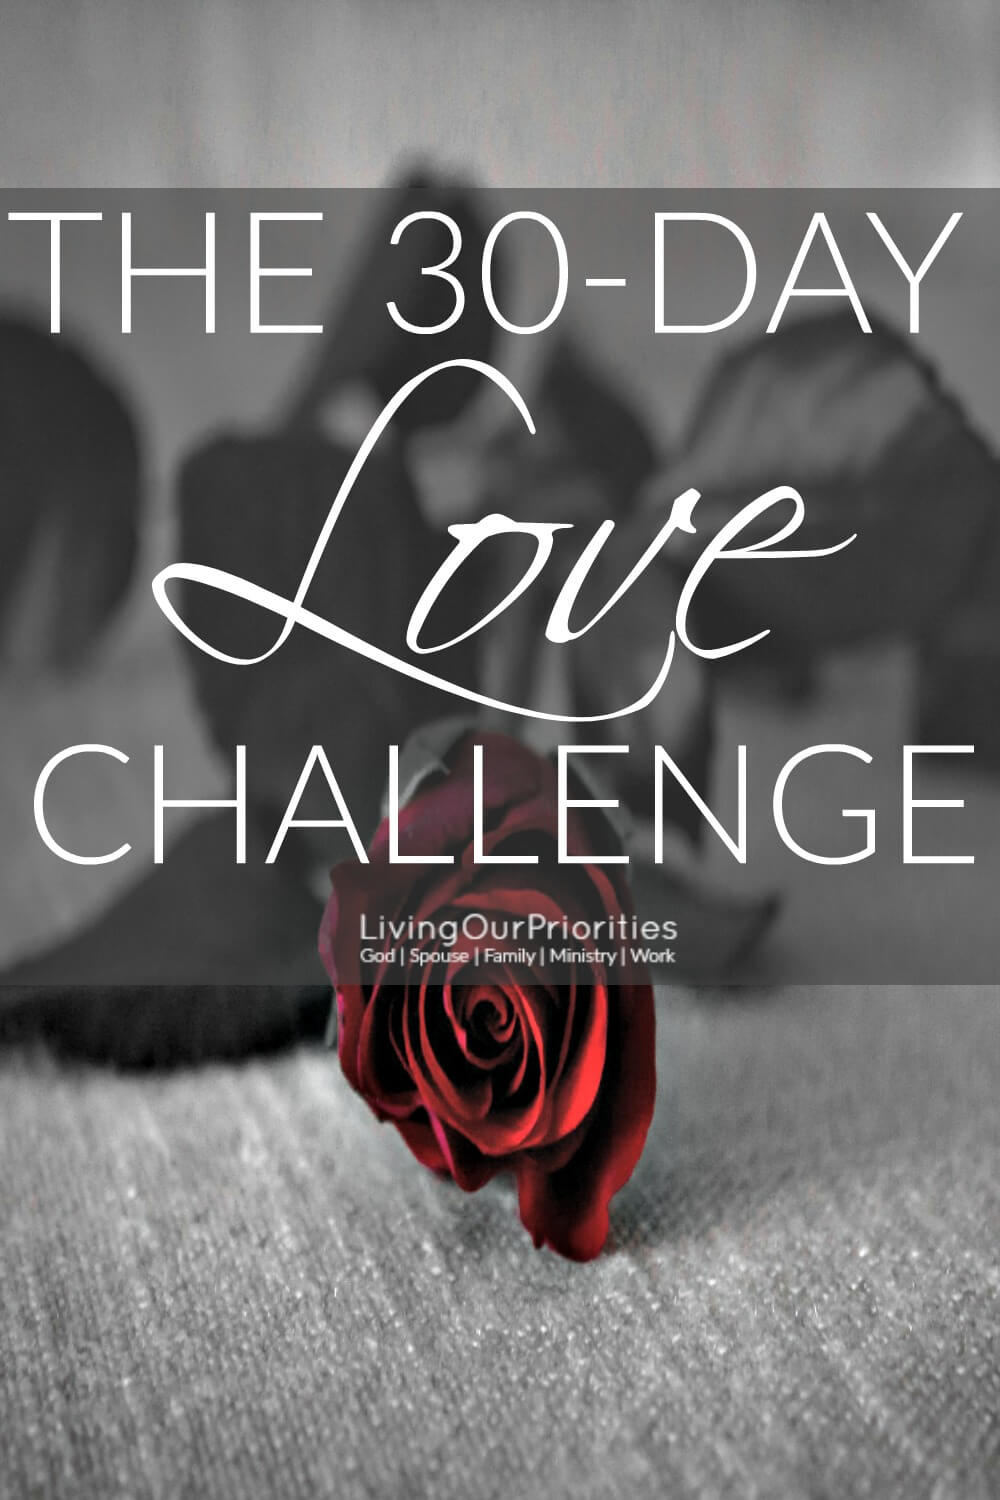 Want to improve your relationship in 30-days? Take the 30-Day Love Challenge. Read more to find out how.